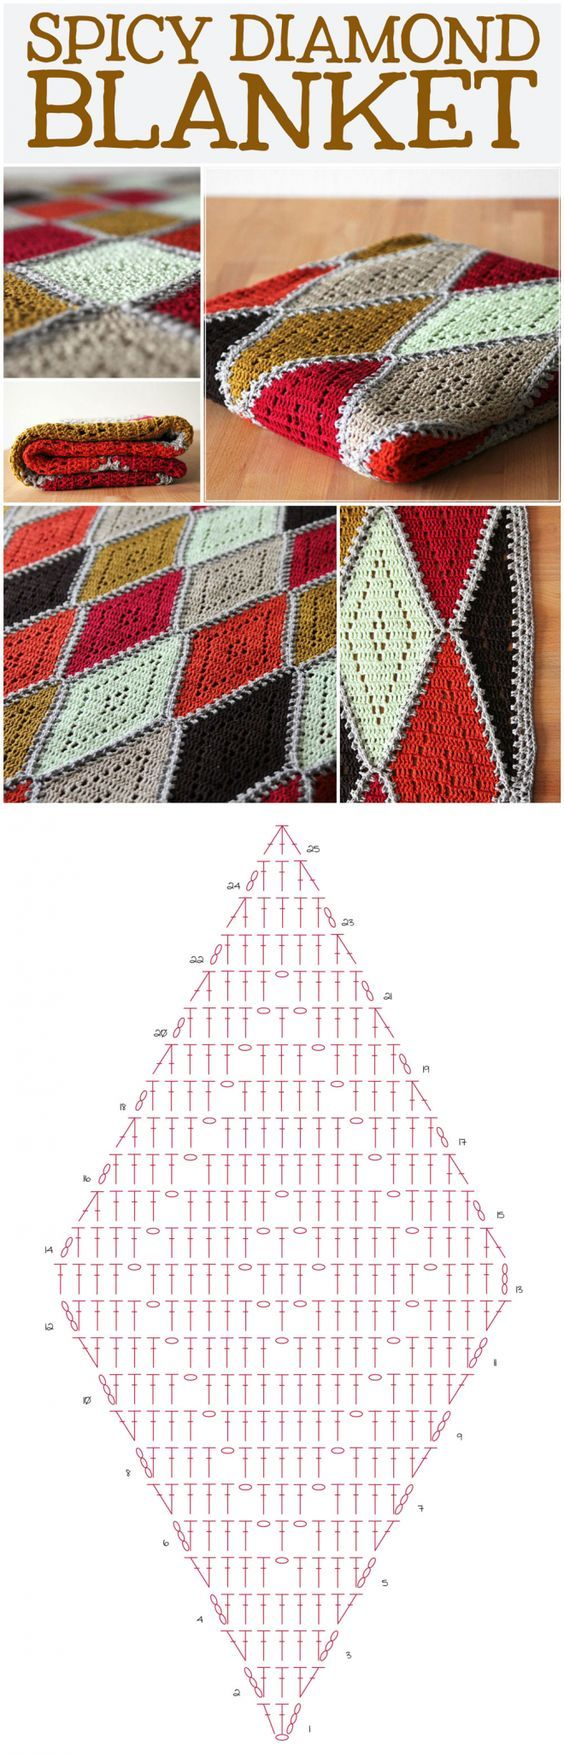 Free crochet pattern: spicy diamond blanket - haak maar Raak ...